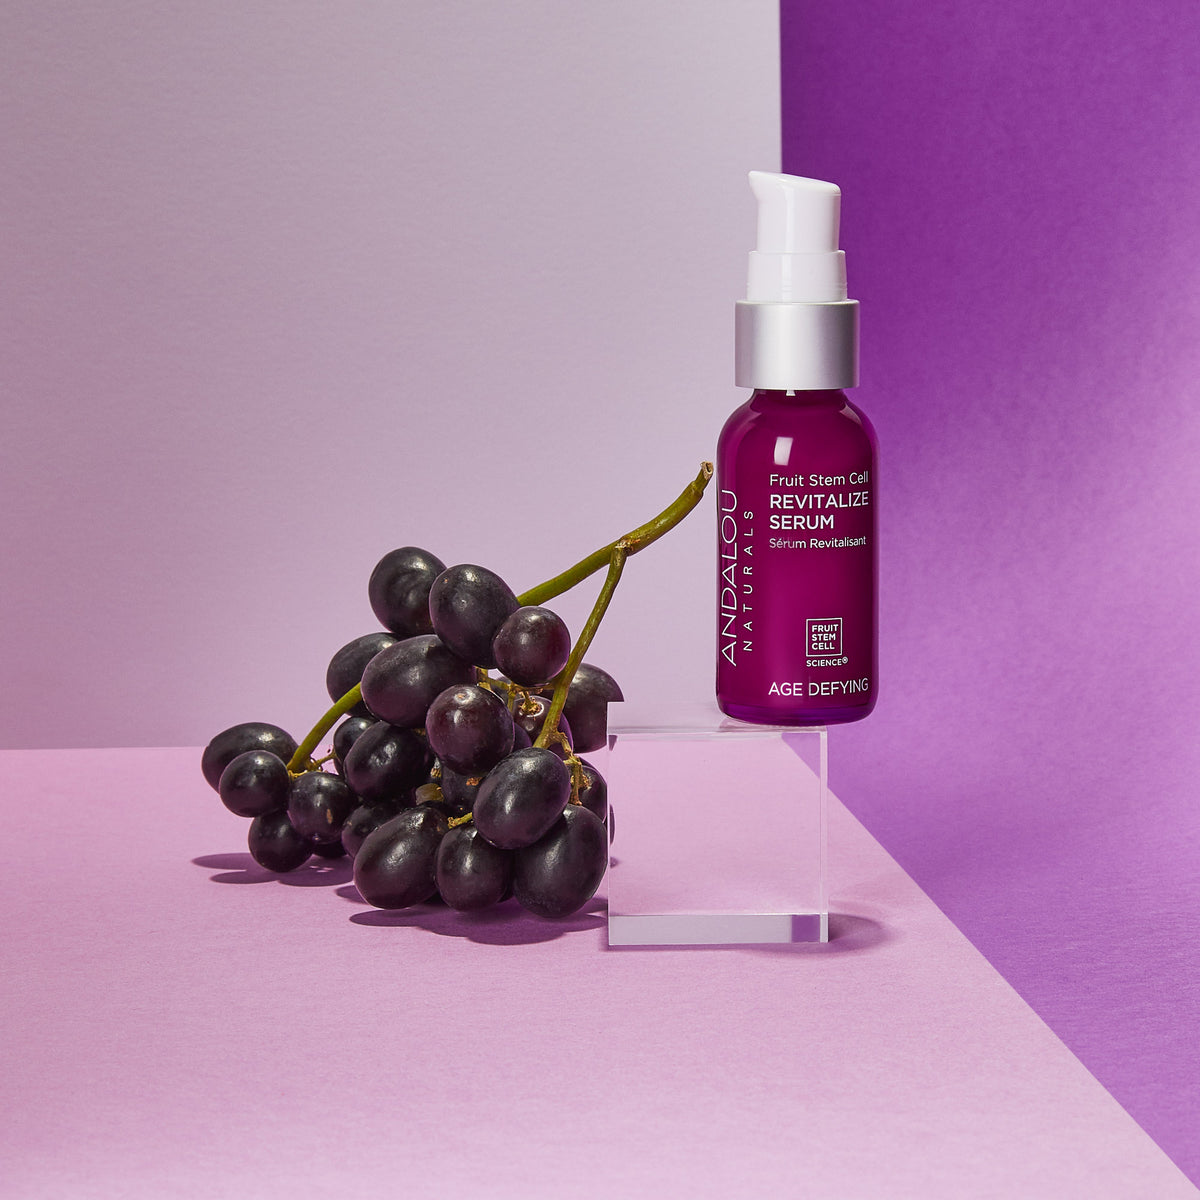 Age Defying Fruit Stem Cell Revitalize Serum